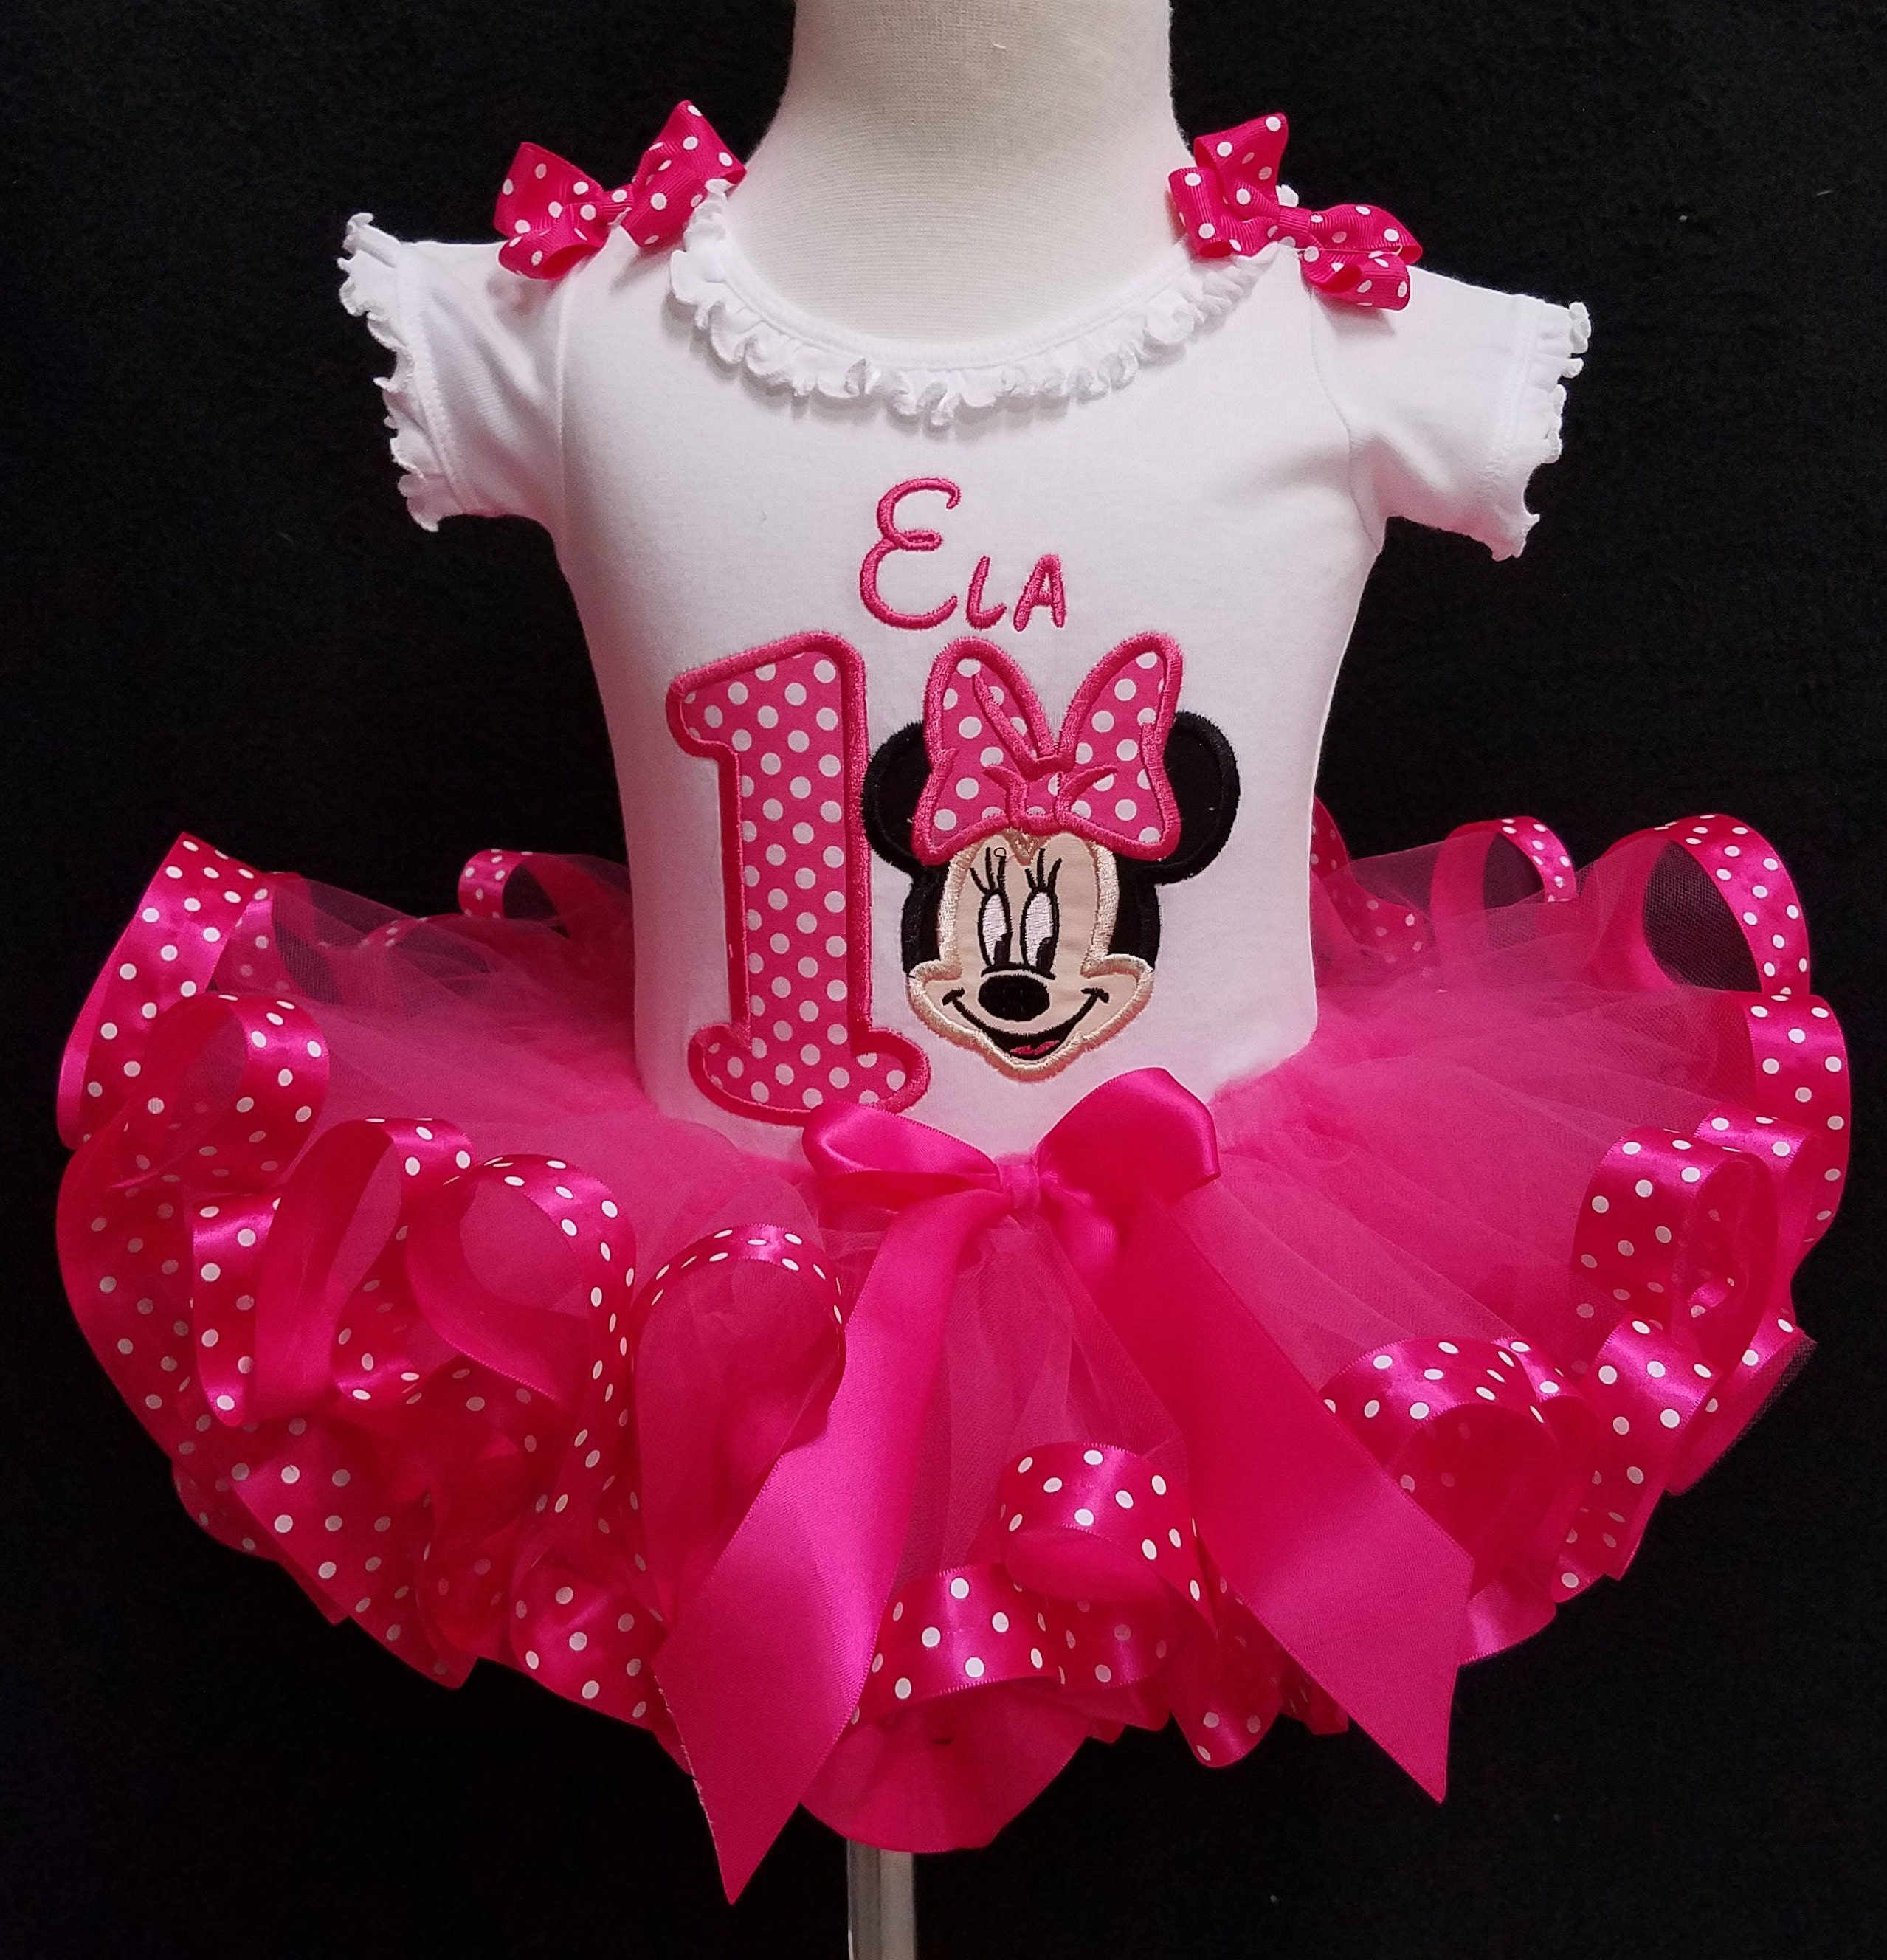 Minnie Mouse Birthday Outfit 1st birthday girl outfit 1st birthday outfit Minnie Mouse tutu personalized baby tutu first birthday baby girl